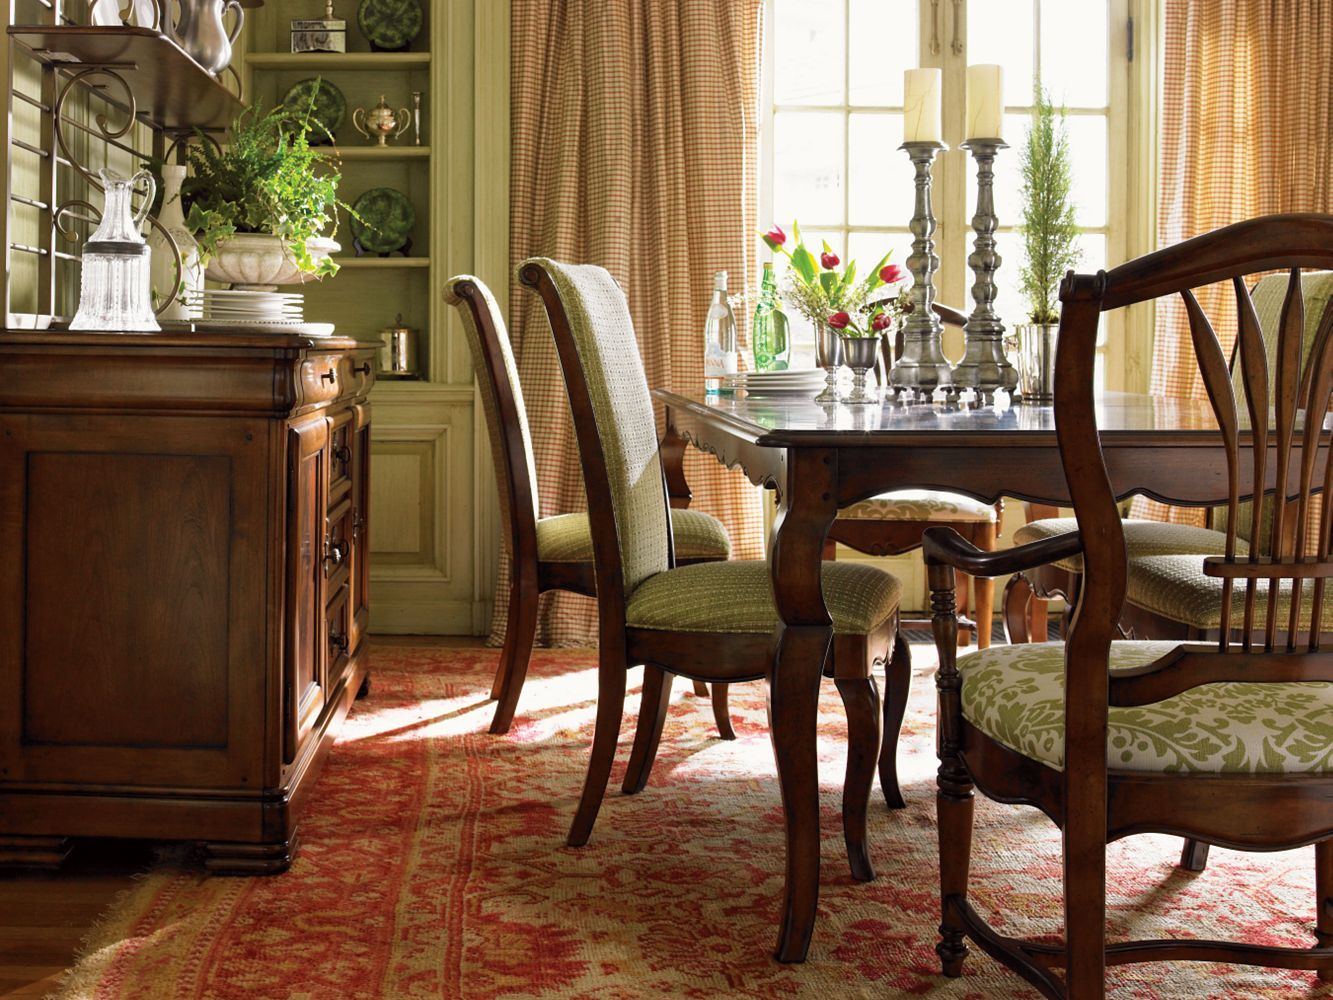 French Country Dining Room Decorating Ideas  Rooms Decors Magnificent French Country Dining Room Decorating Ideas Decorating Inspiration